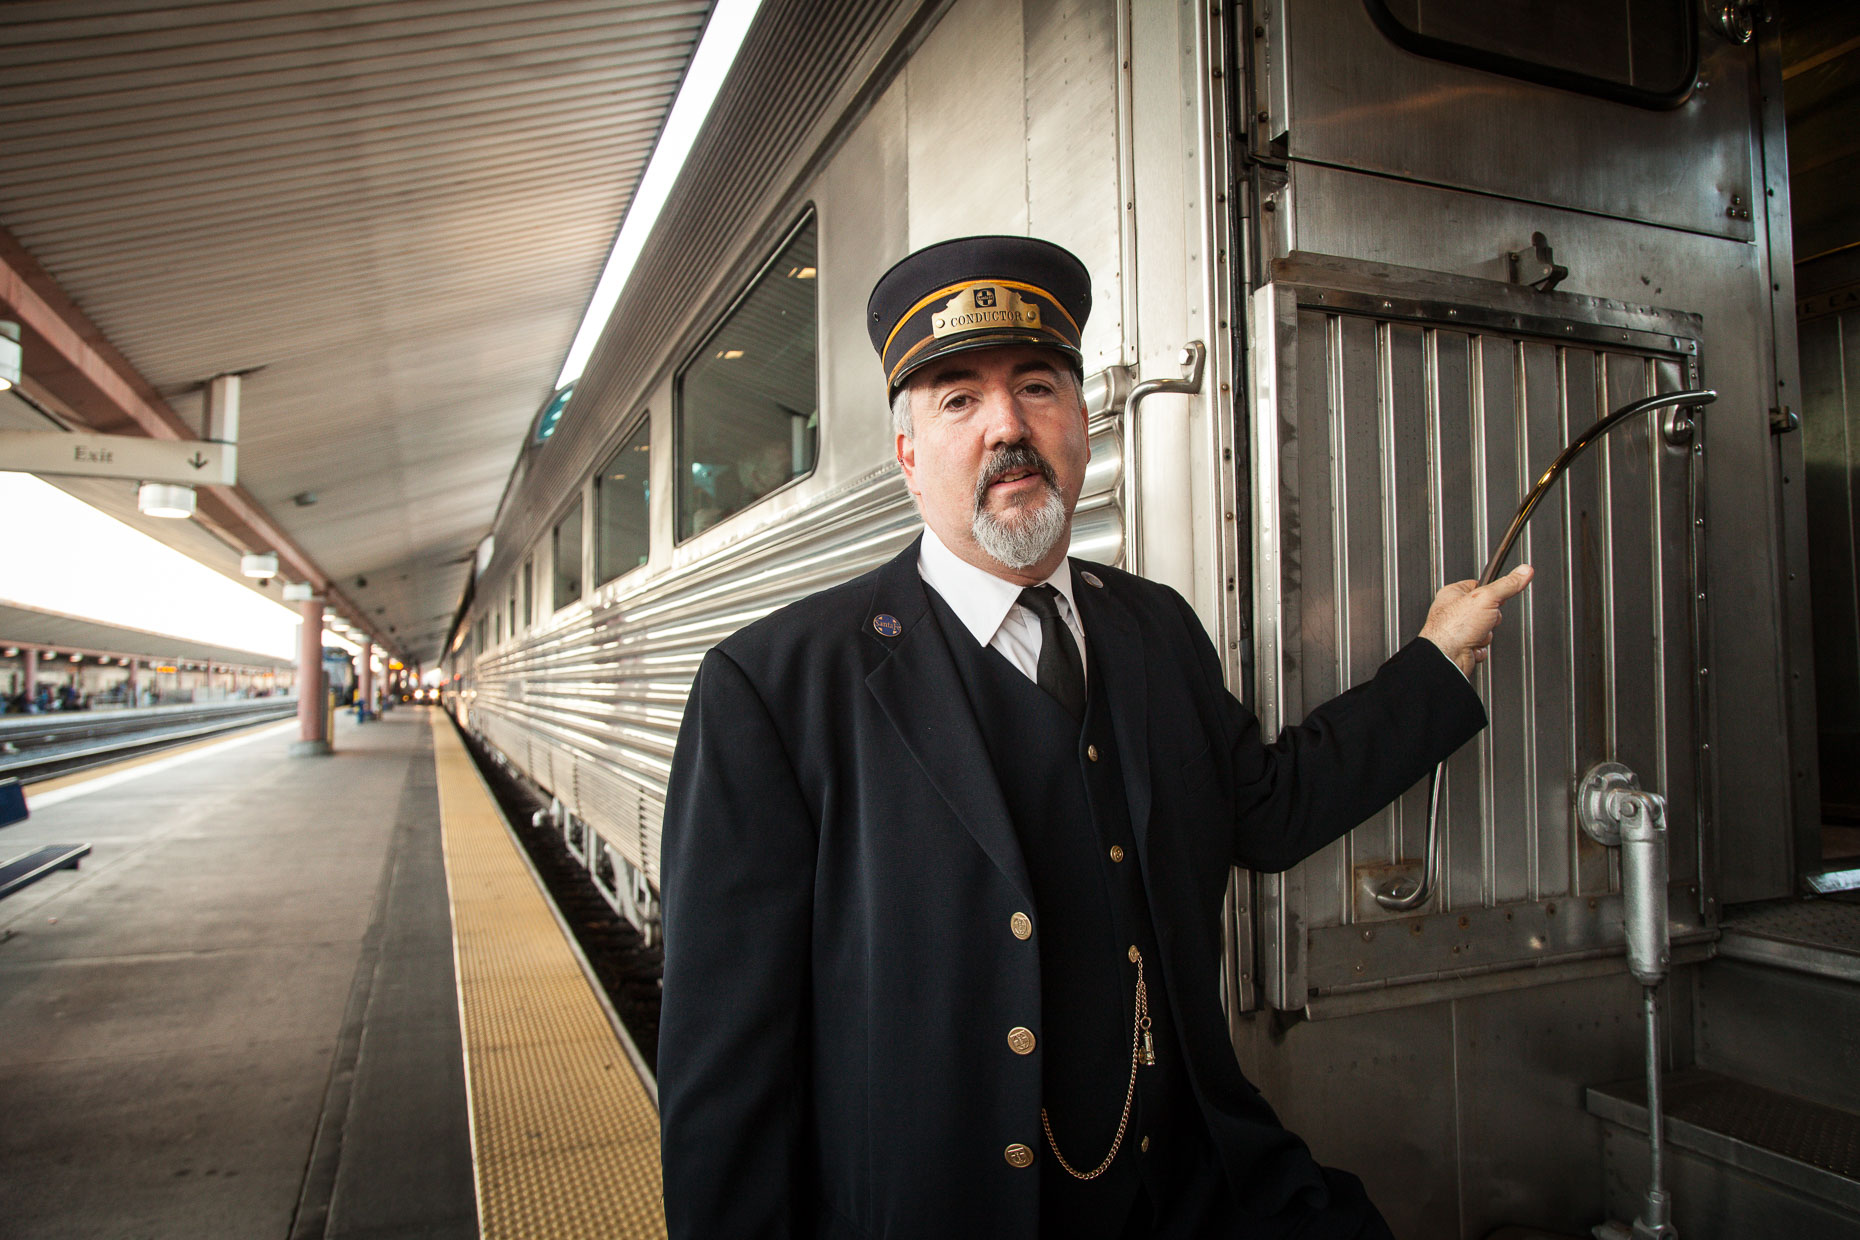 Train conductor standing next to passenger train on train station platform at Union Station, Los Angeles, California by David Zaitz